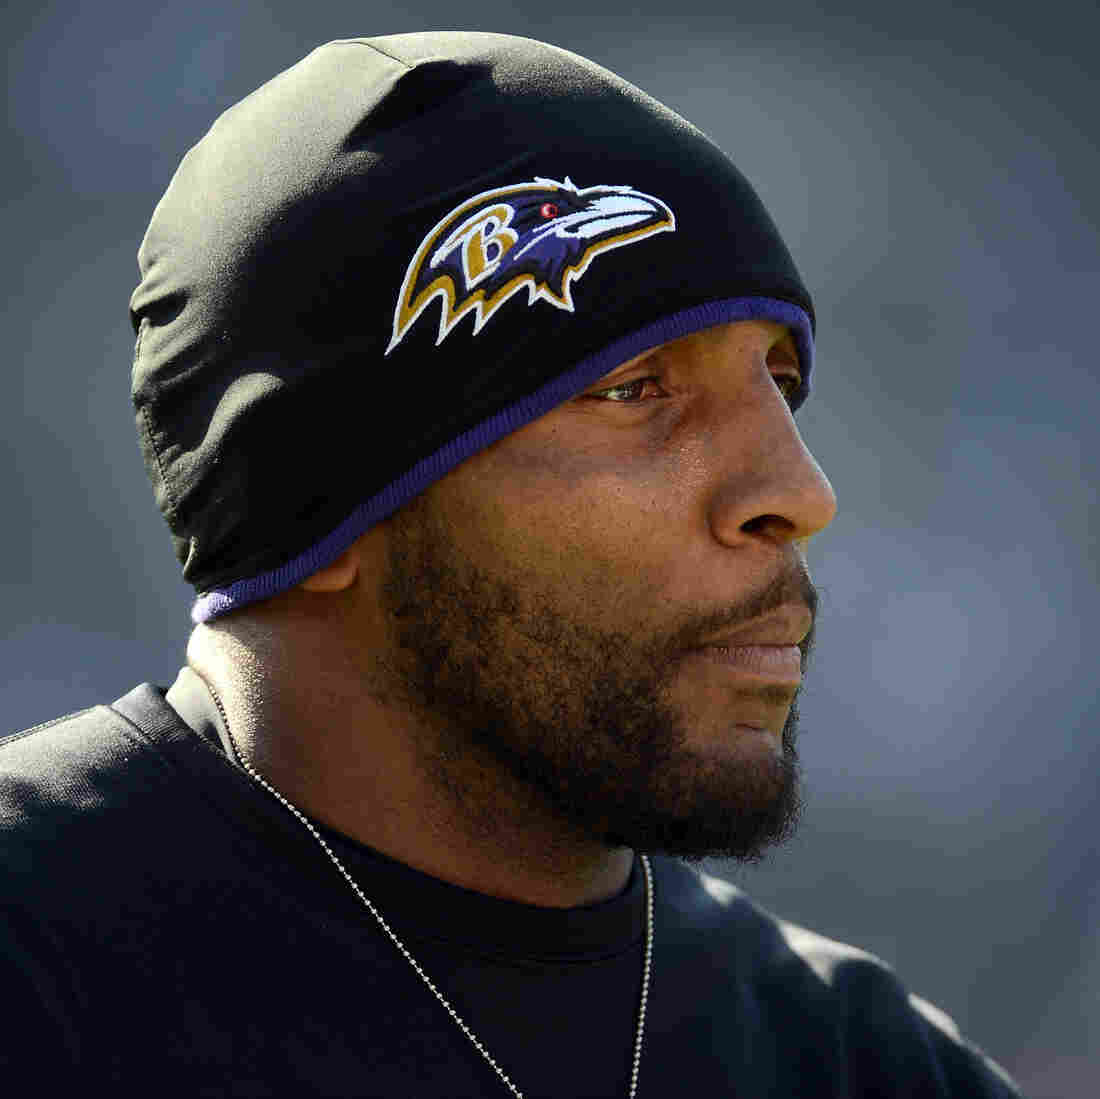 Linebacker Ray Lewis announced Wednesday that he will retire after the Baltimore Ravens' season ends. Most media coverage of Lewis' legacy has omitted his part in a 2000 double-homicide case.